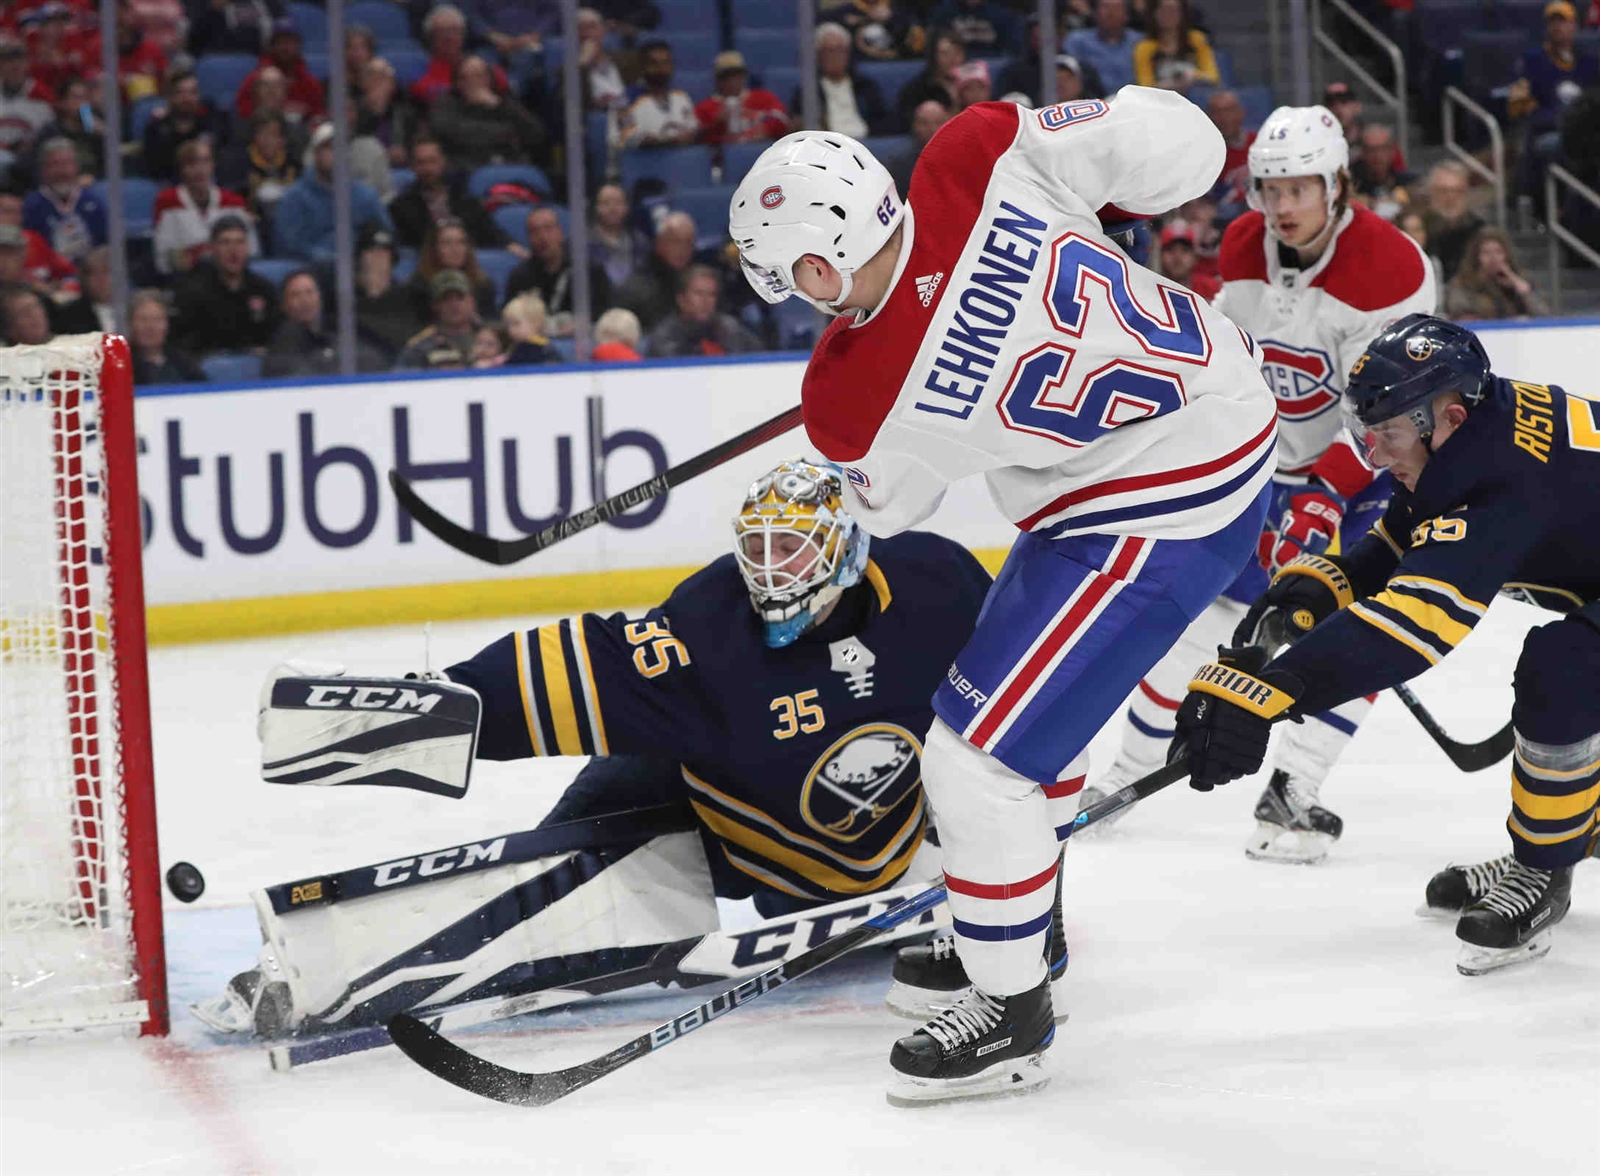 Montreal Canadiens left wing Artturi Lehkonen (62) scores a goal on Buffalo Sabres goaltender Linus Ullmark (35) in the second period.